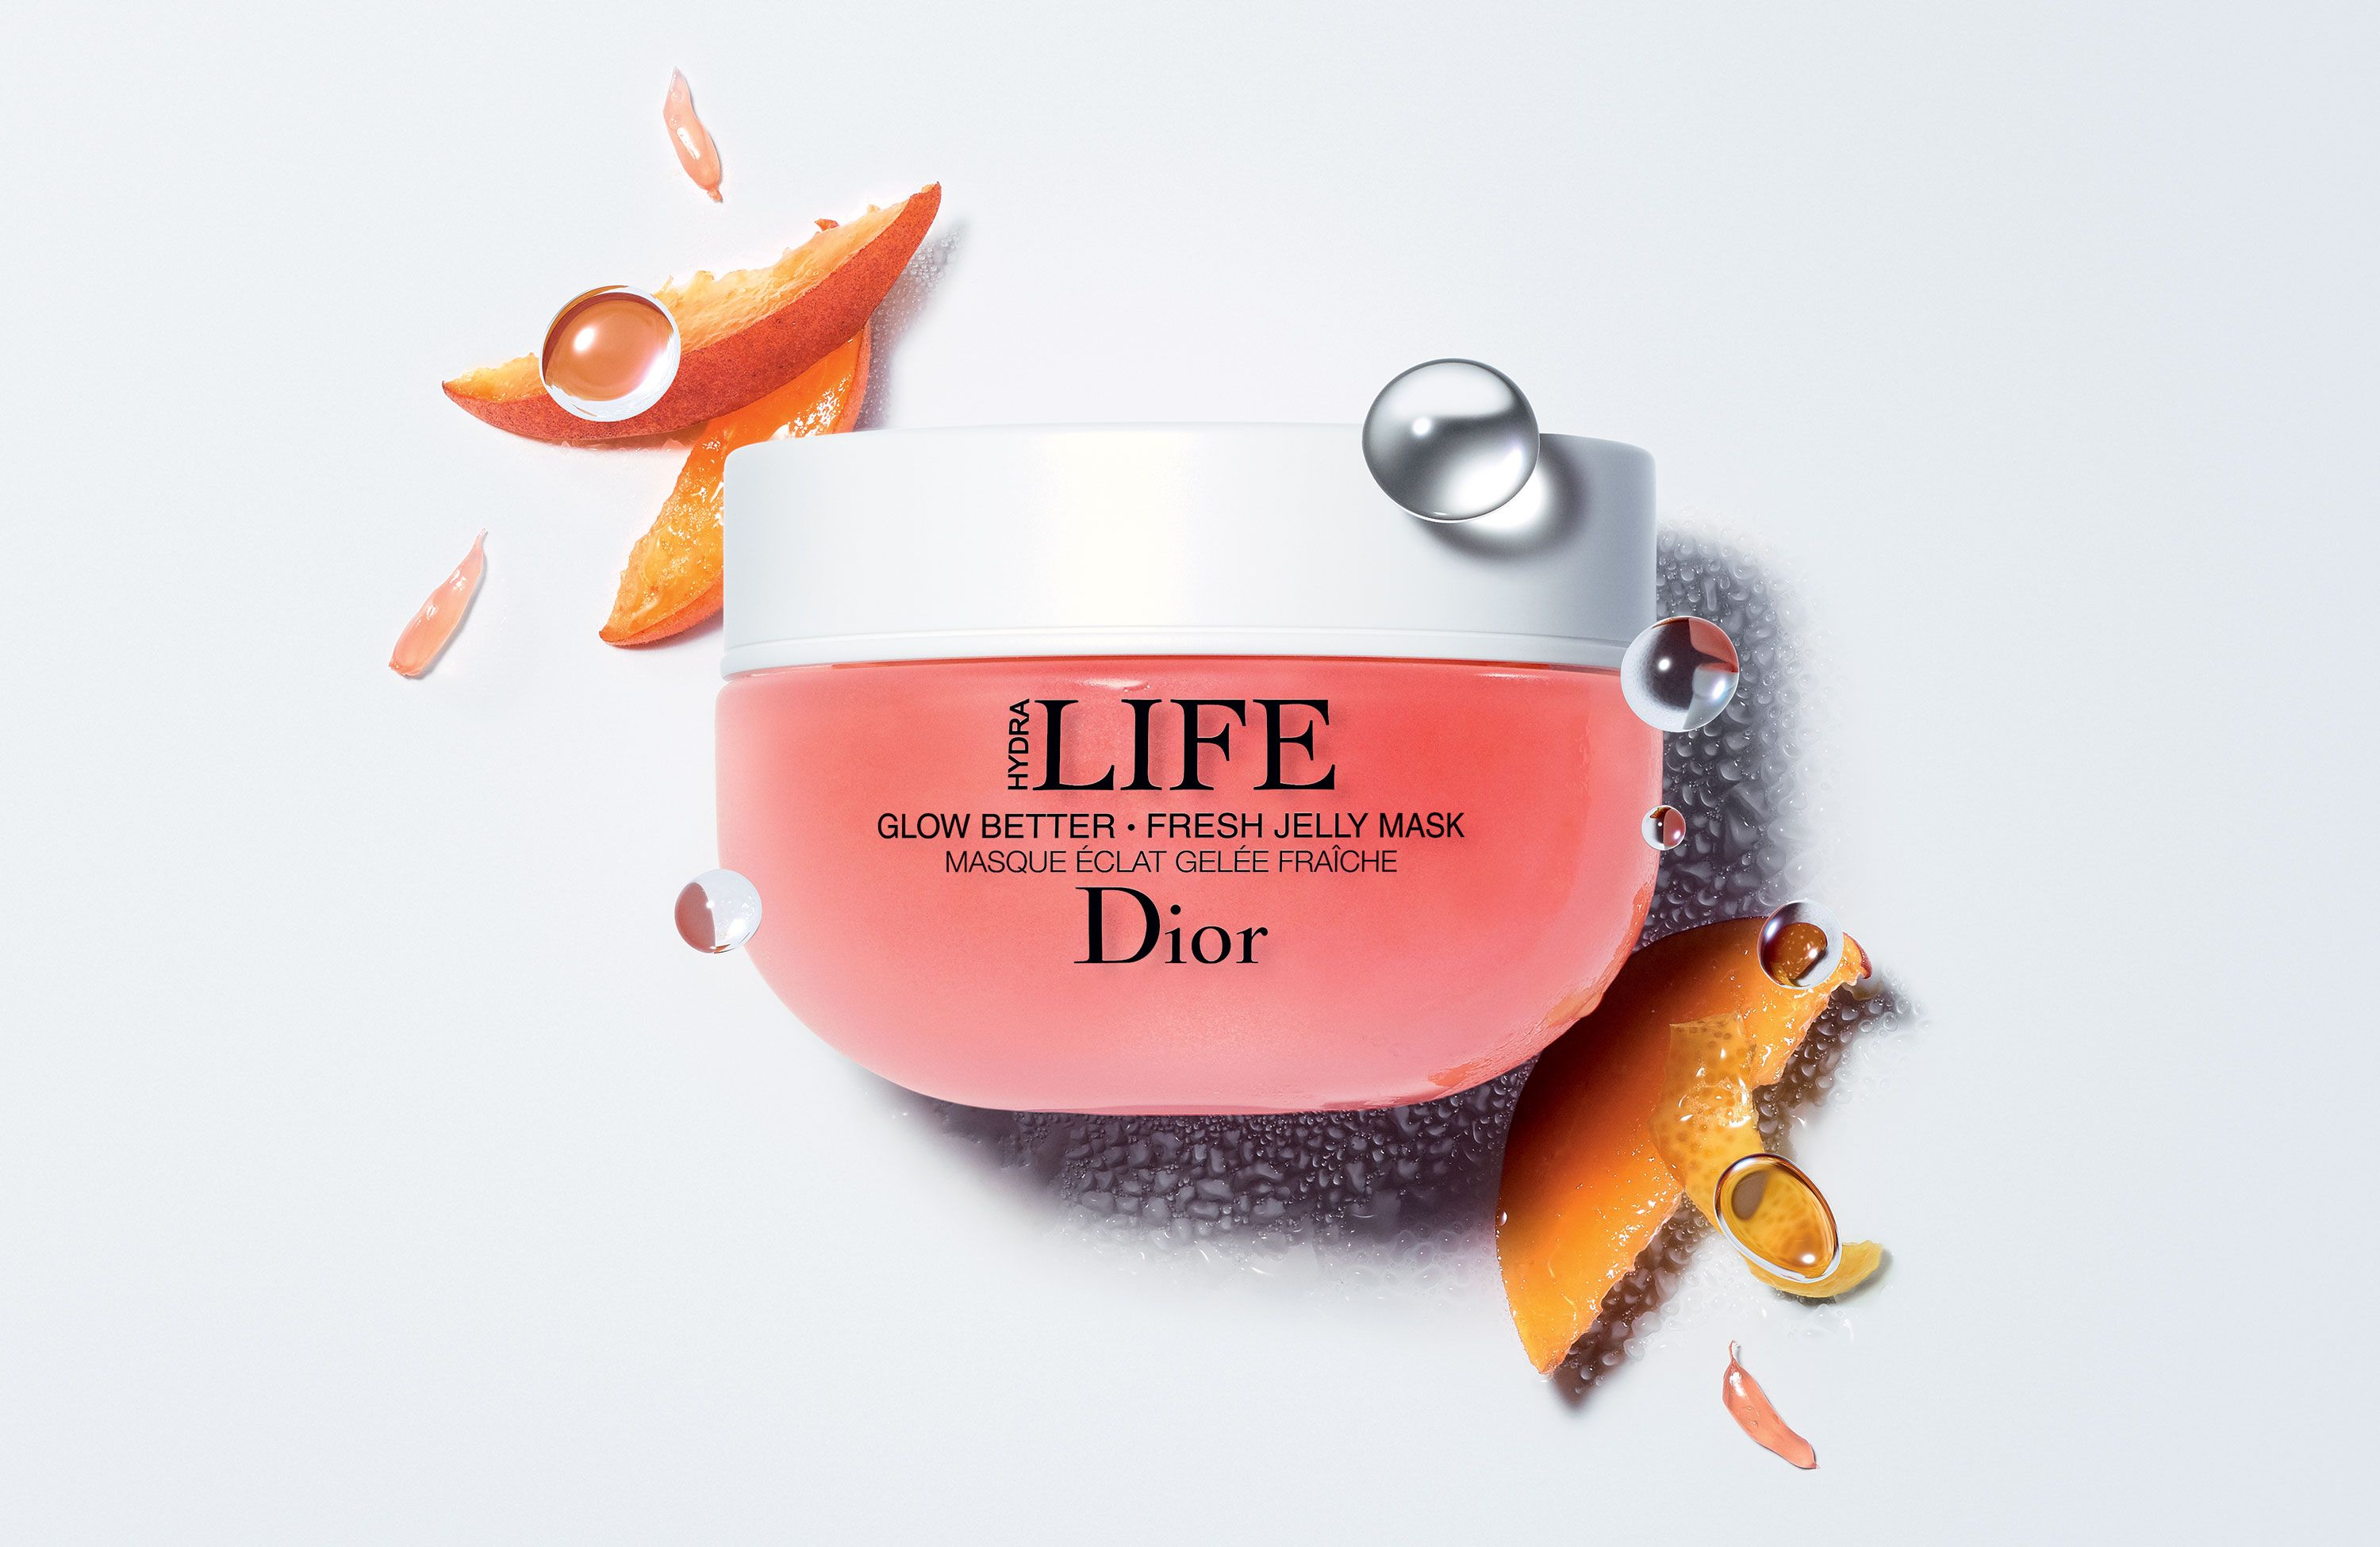 Hydra Life Glow Better Fresh Jelly Mask by Dior #18